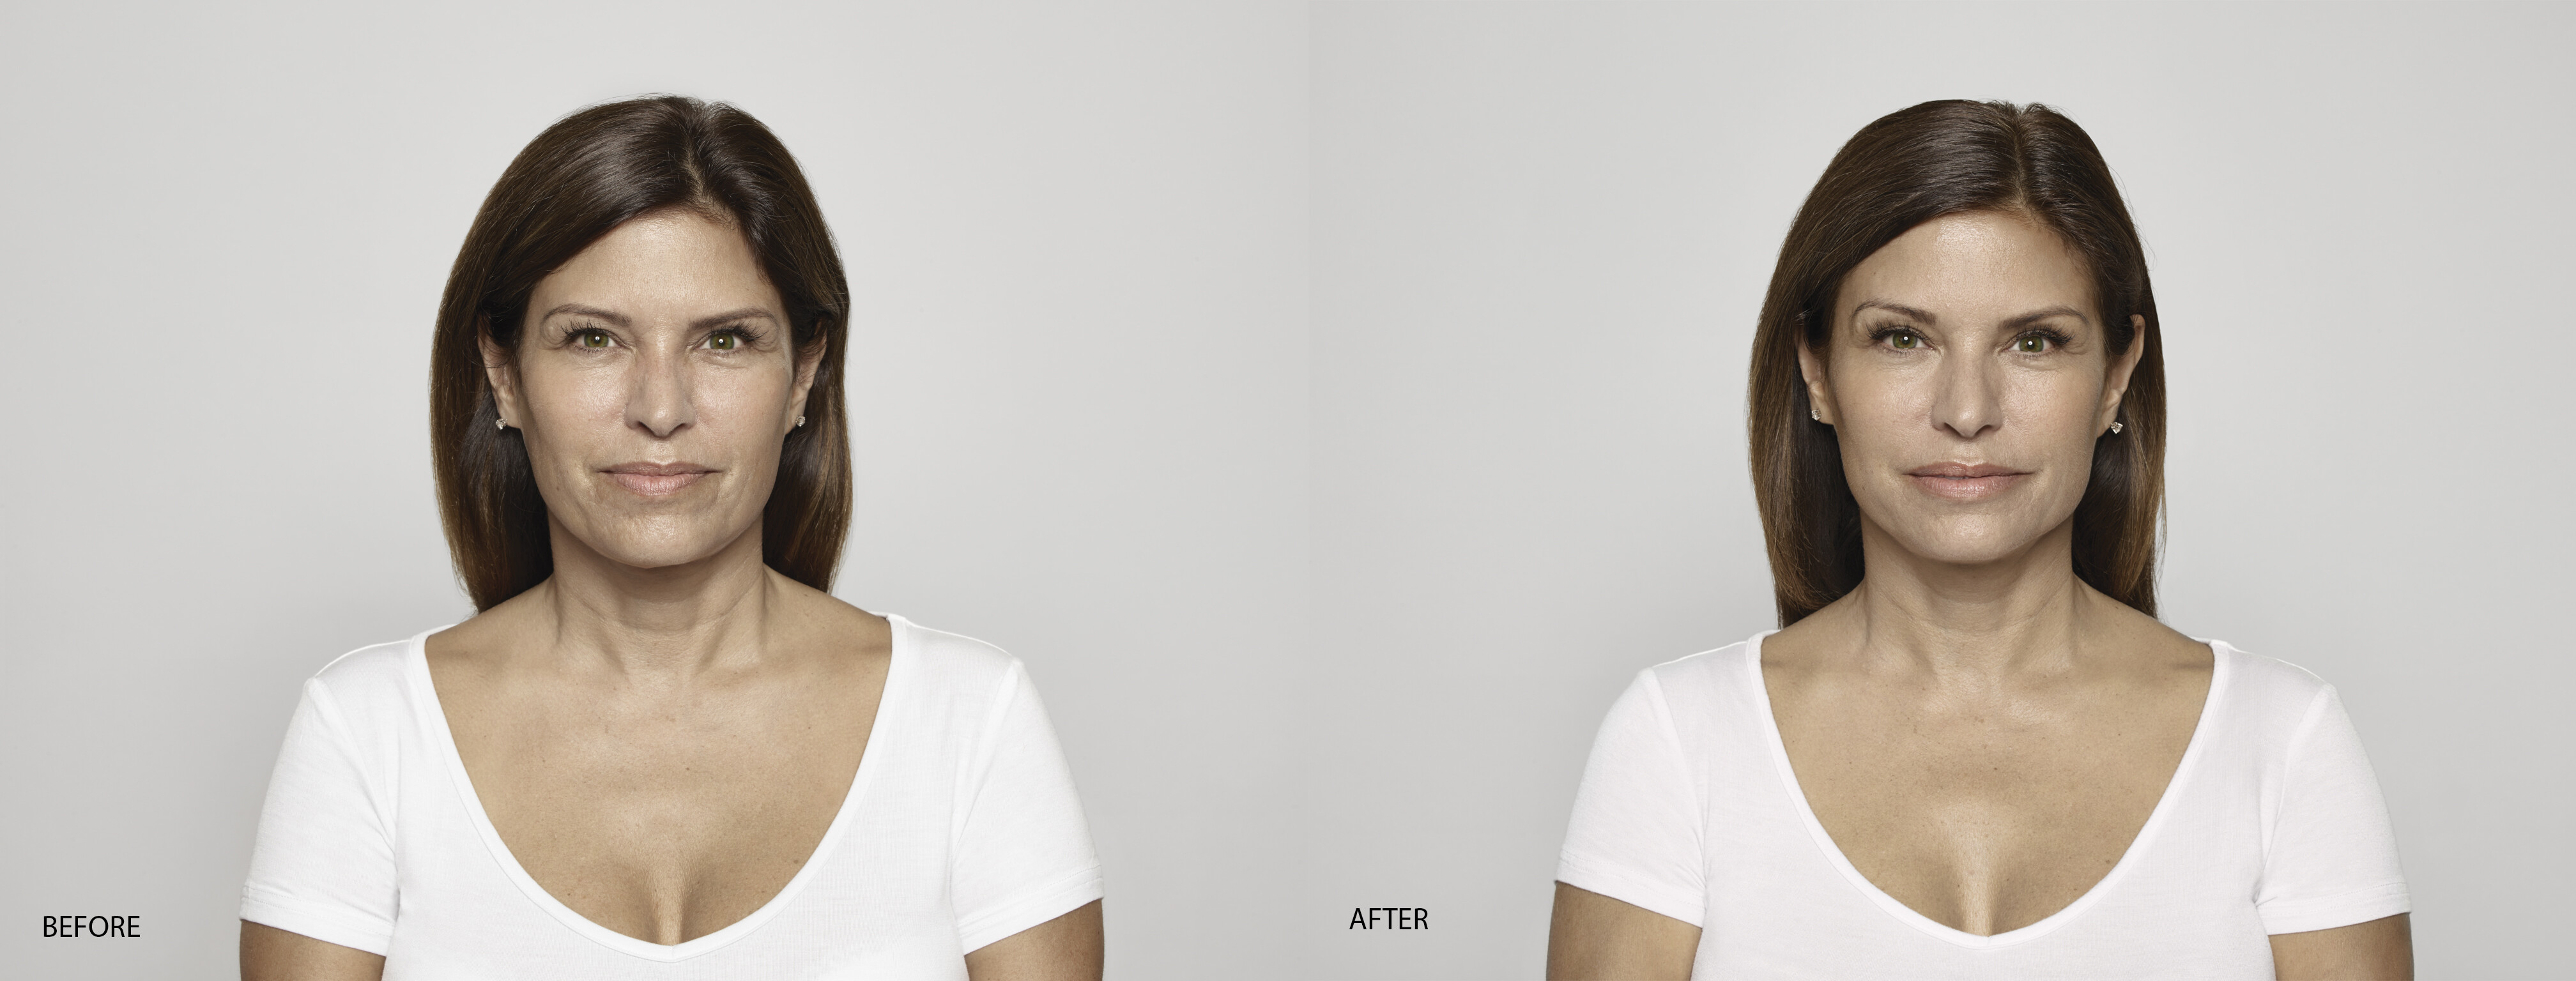 Dr. Terese Taylor M.D. - Cape Coral and Fort Myers Doctor - Restylane - Before and After